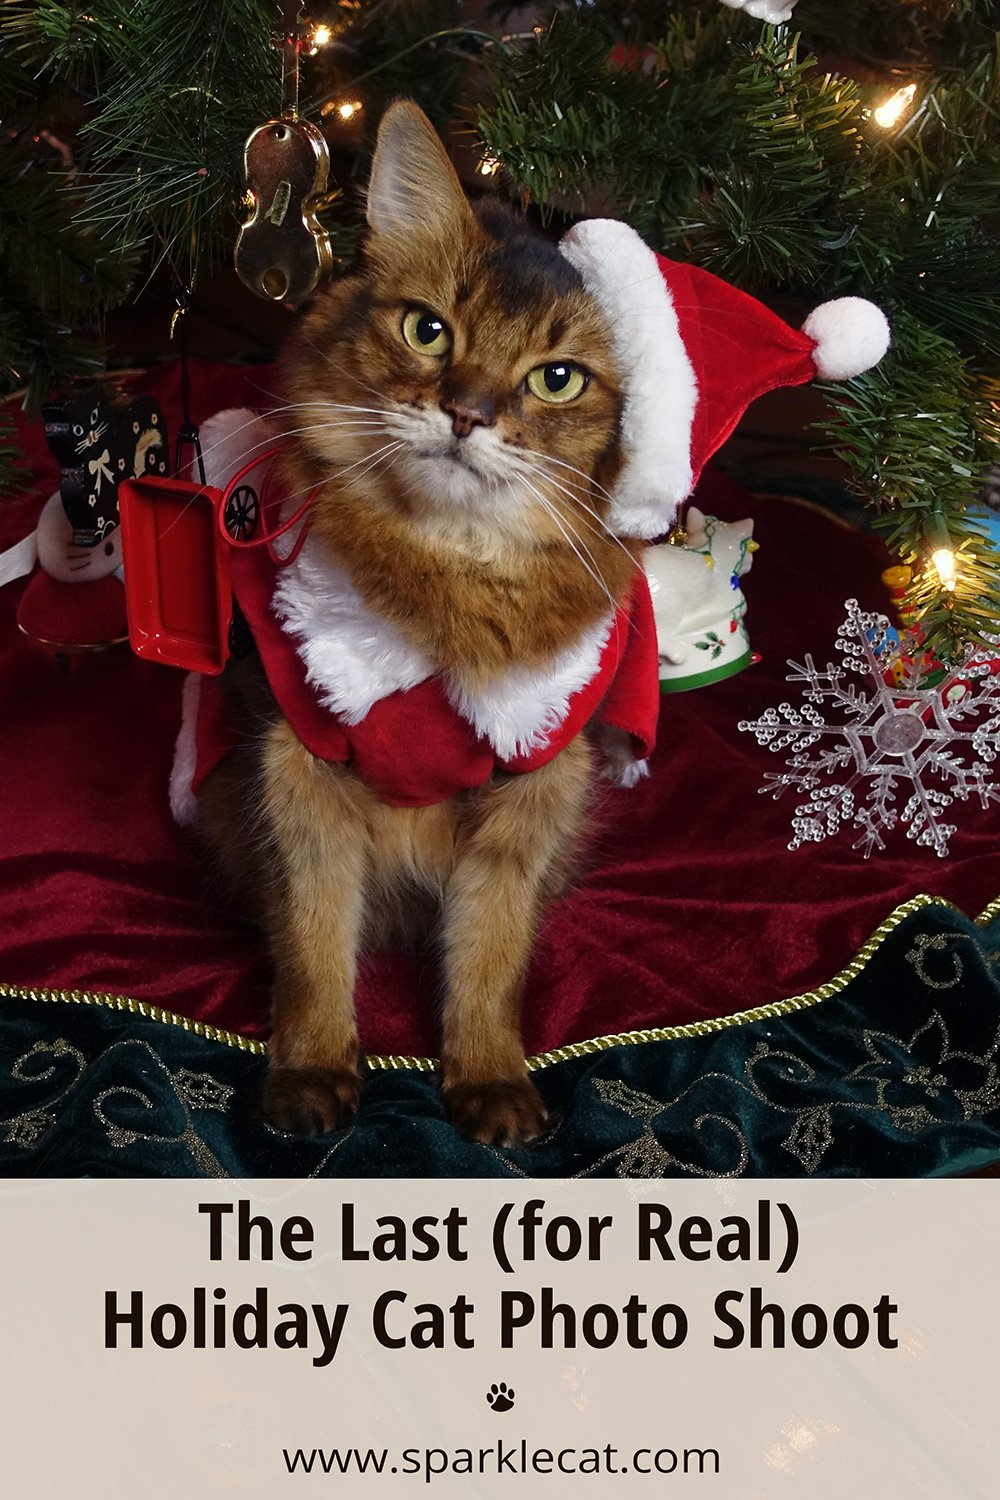 The Last Holiday Photo Session (for Real!)